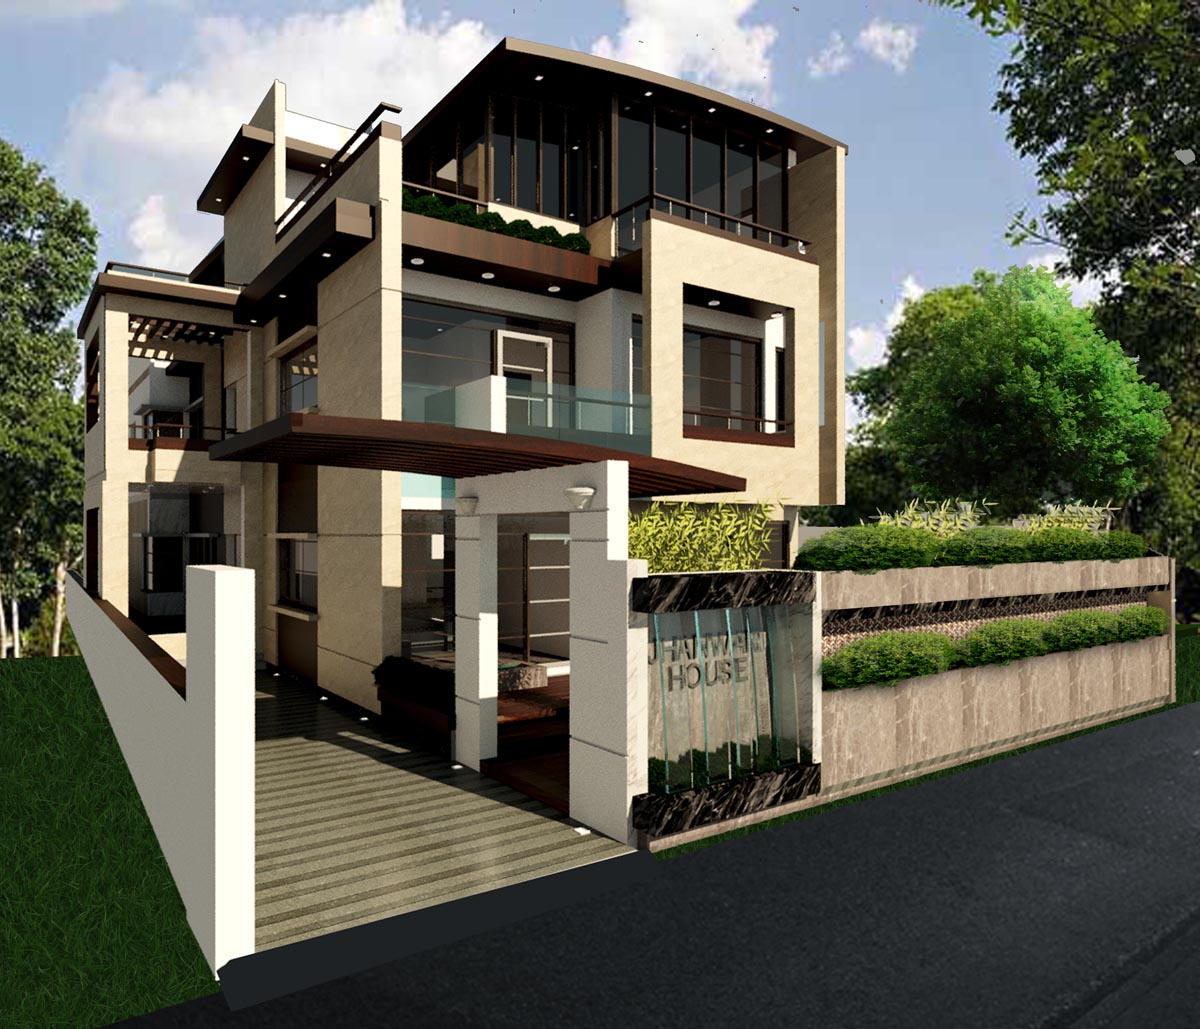 Front Elevation Of House In Jodhpur : Stone house architect magazine design atelier jodhpur